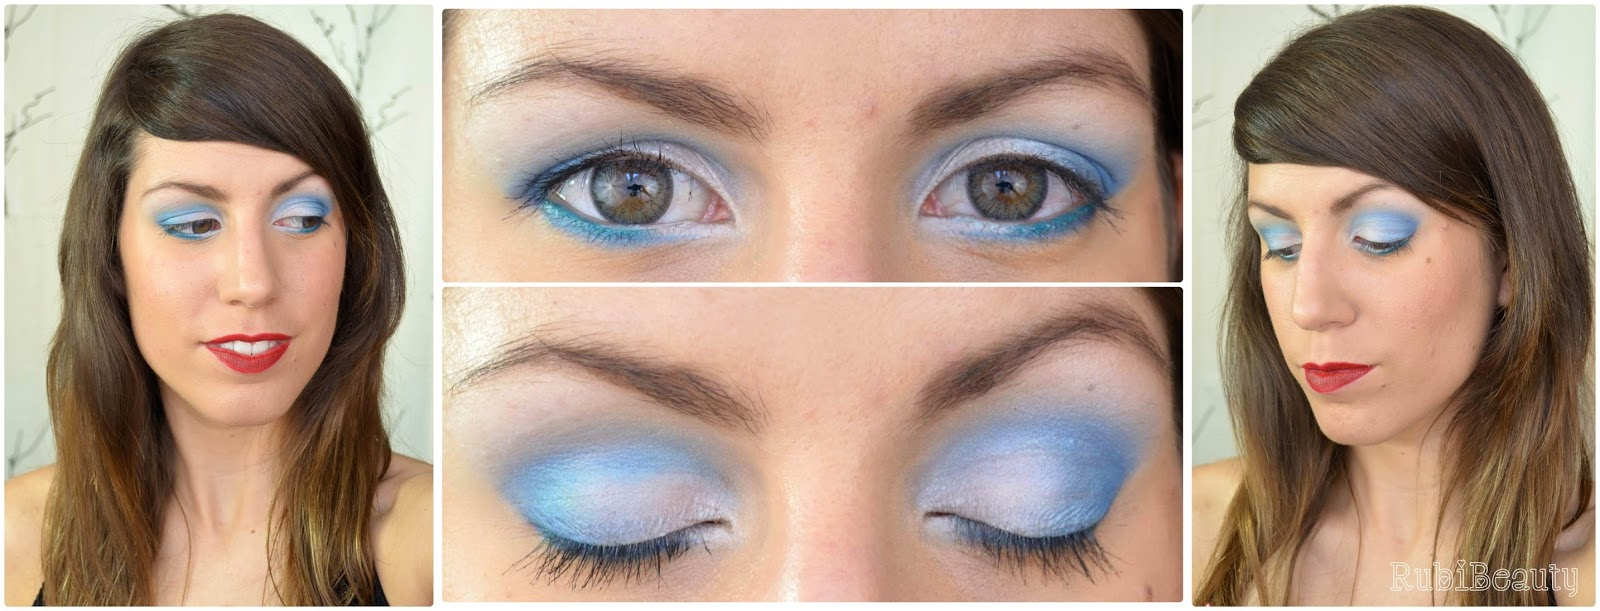 rubibeauty maquillaje white sailor blanco marinero verano it huelva lentillas